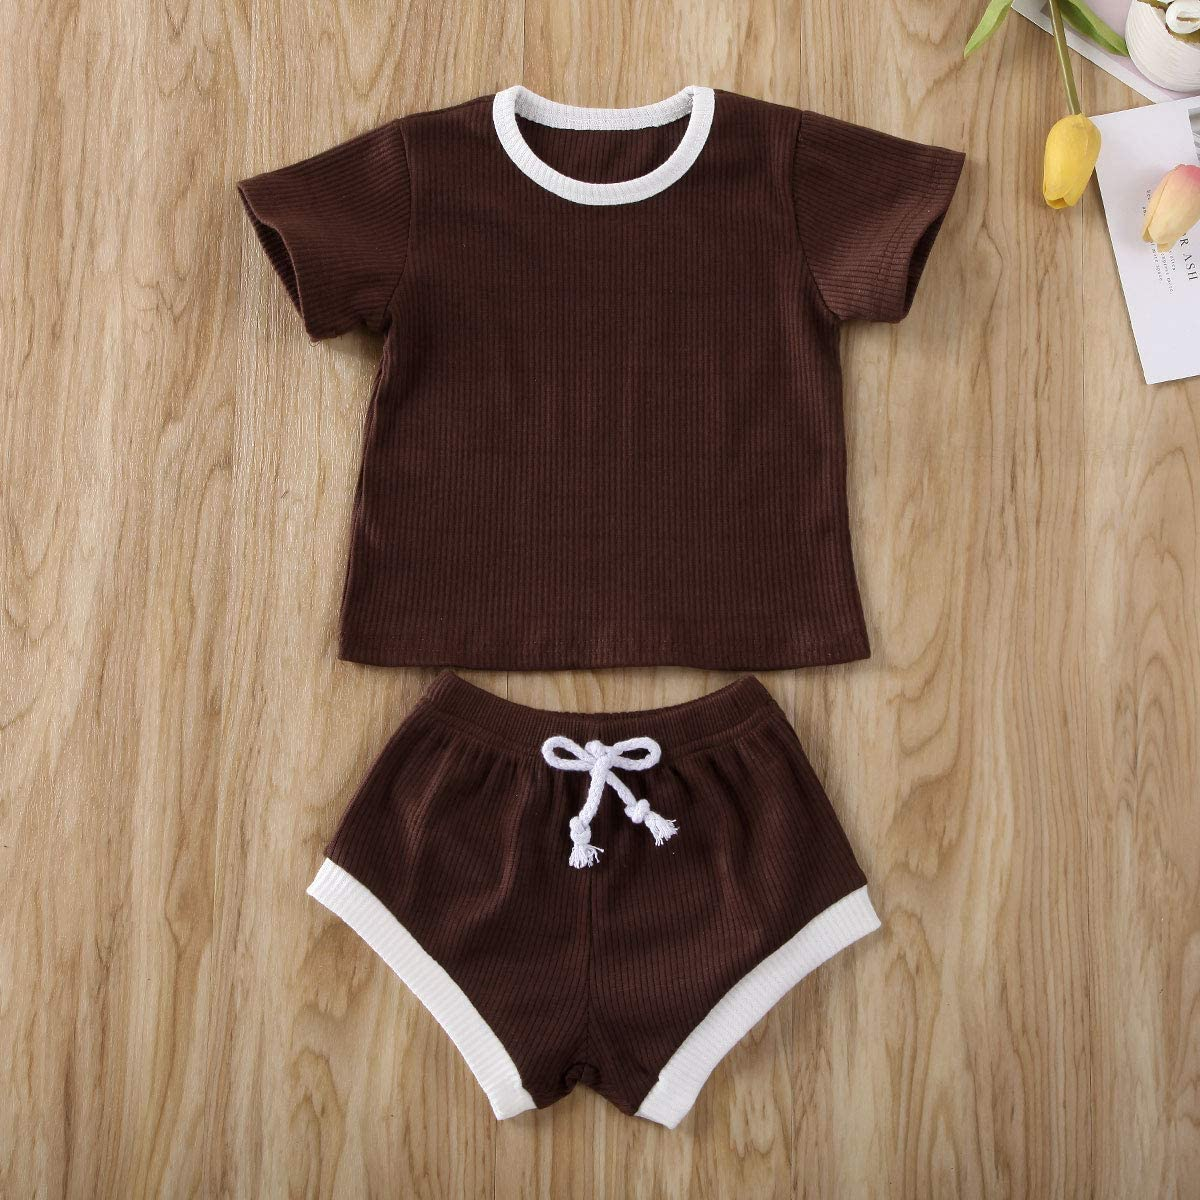 Newborn Infant Baby Girl Boy Clothes Short Sleeve Tops T-Shirt+Shorts Pants Solid Color Two Piece Outfits Set